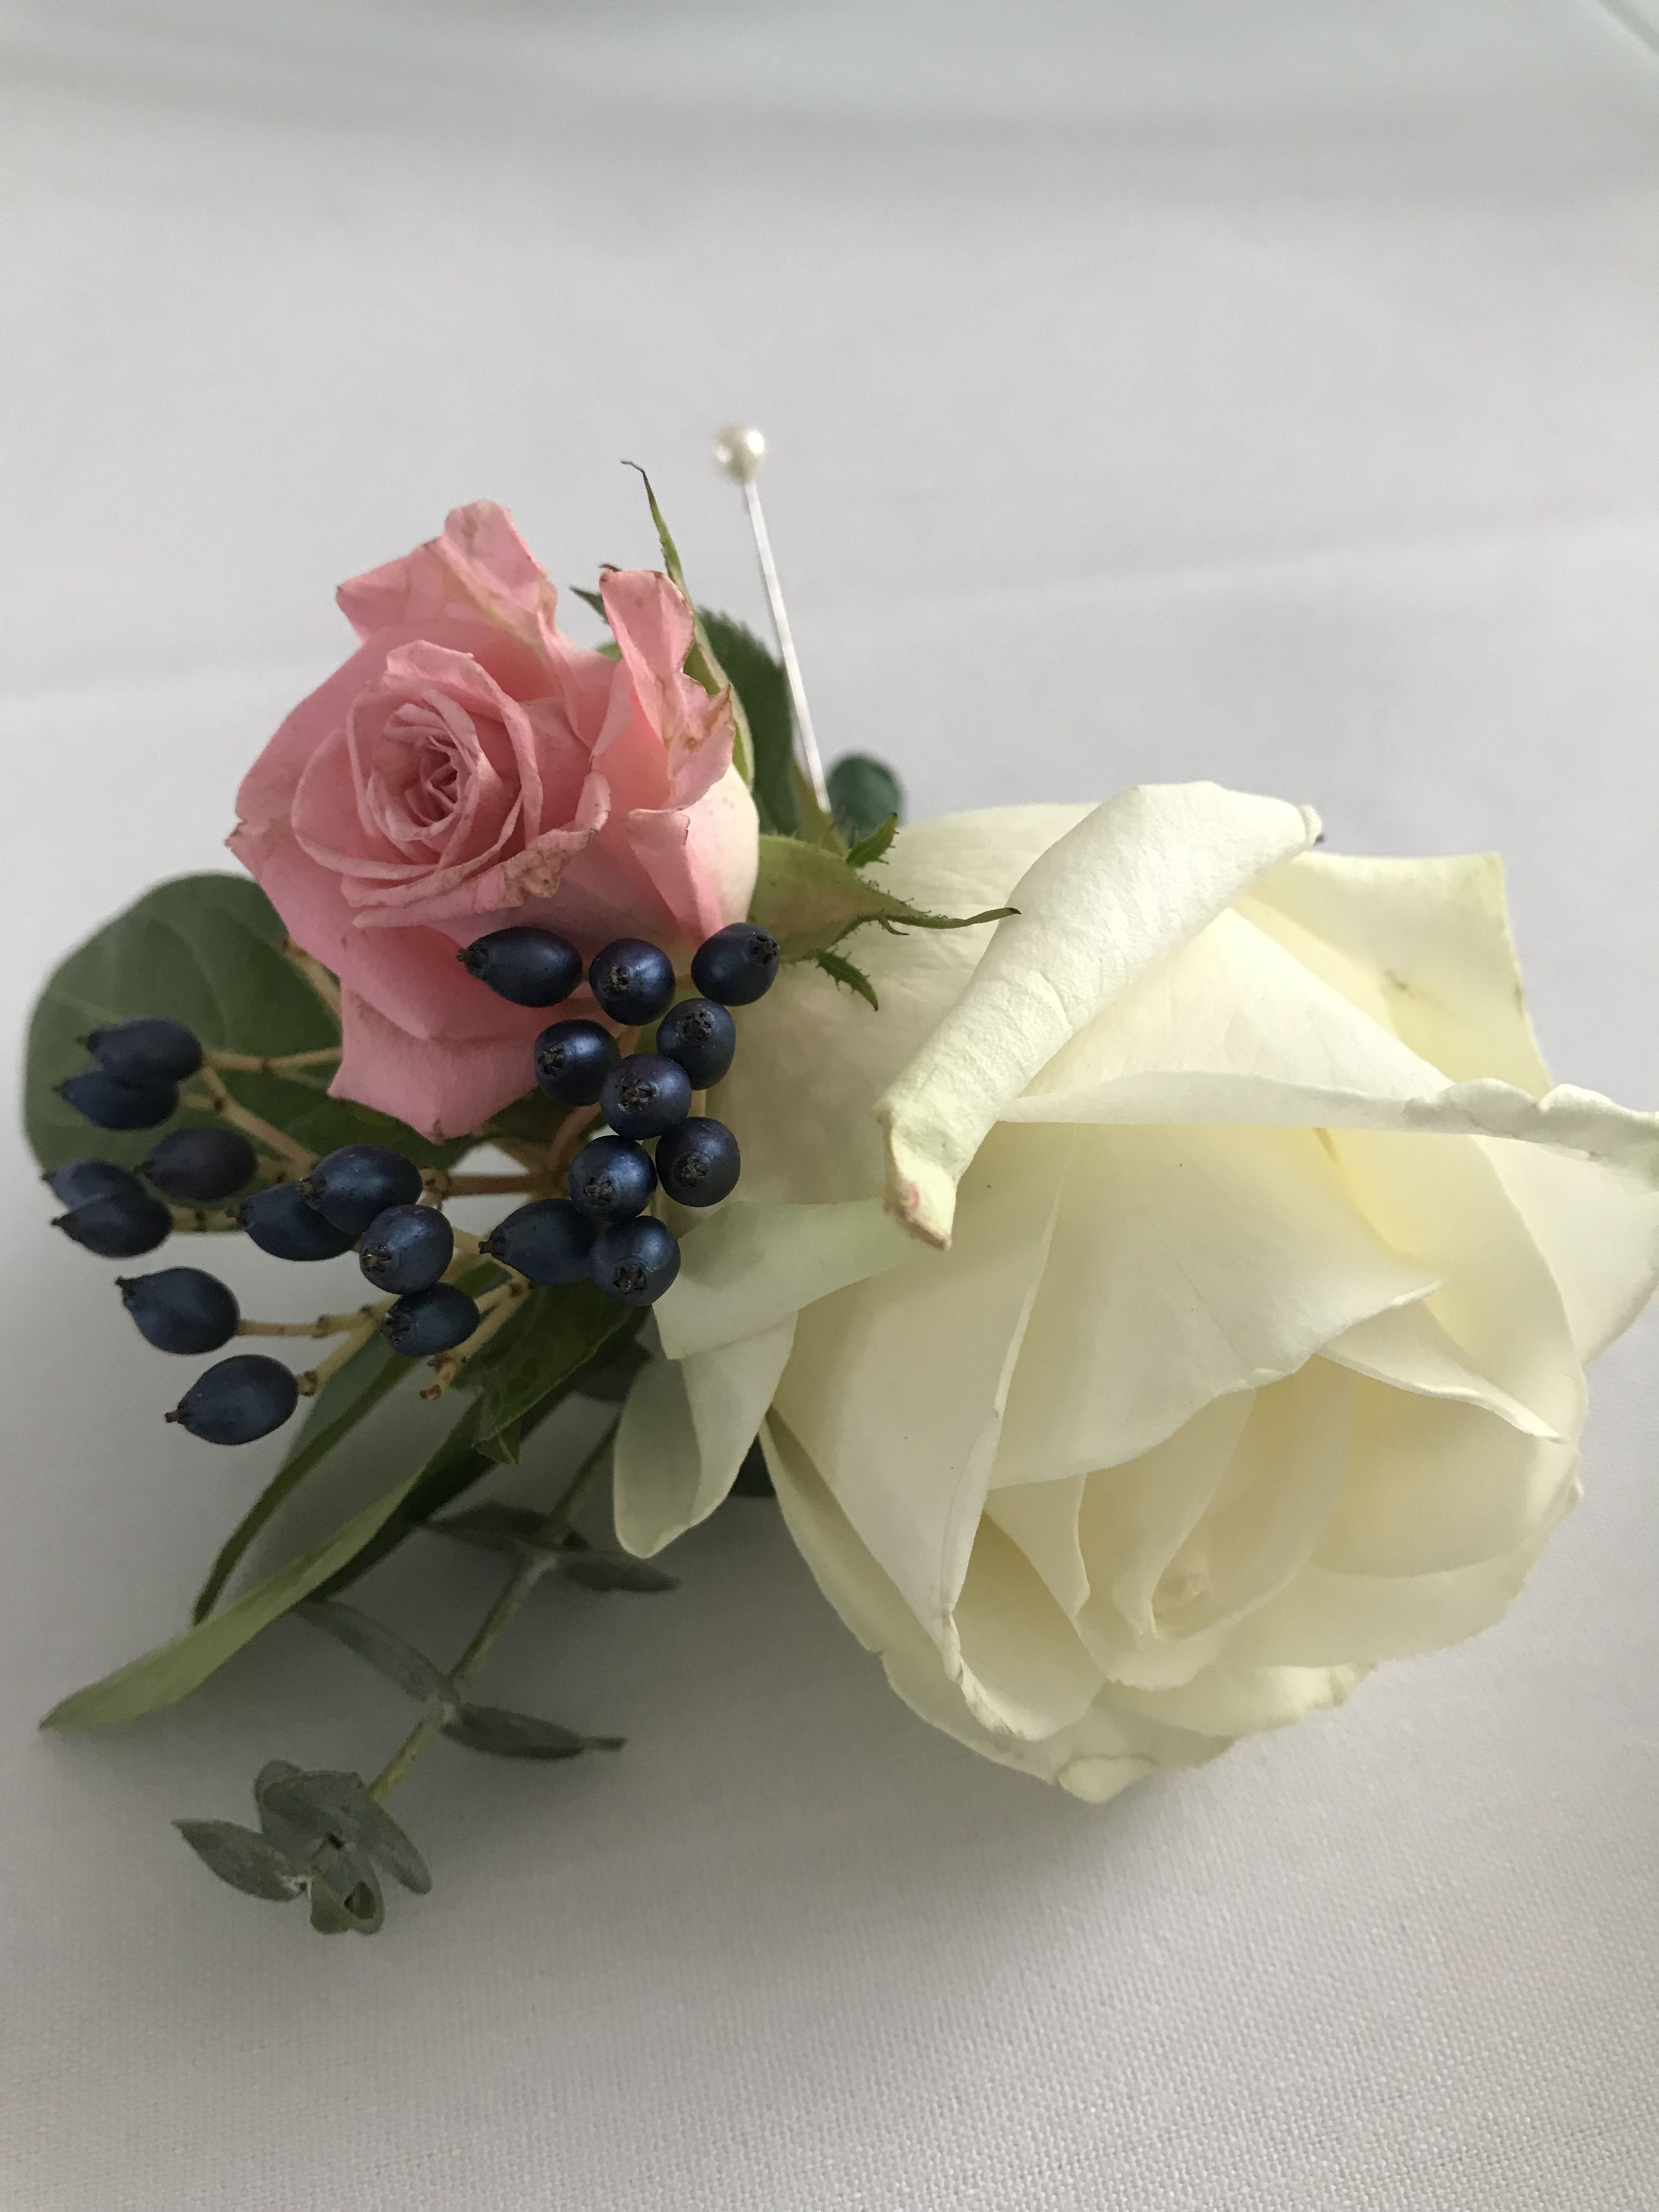 Pin by Sheena on The flower boutique  Pinterest  Flower boutique